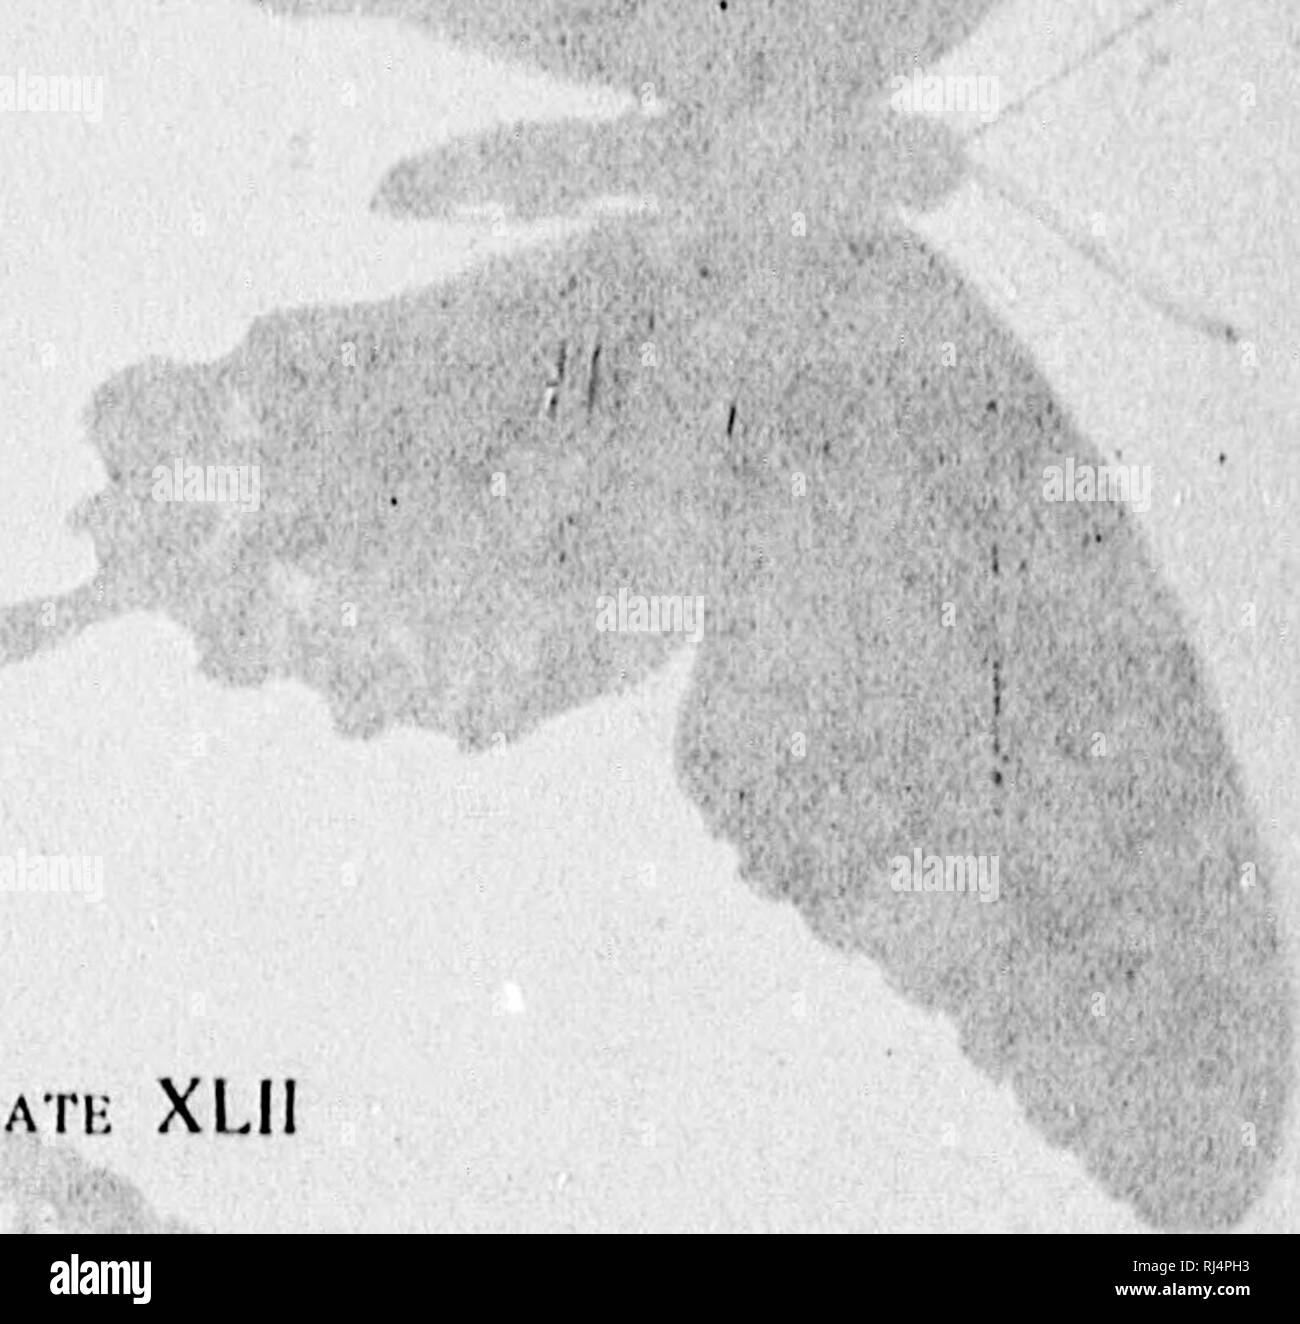 """. The butterfly book [microform] : a popular guide to a knowledge of the butterflies of North America. Butterflies; Papillons. Iffir. f""""PH Â«*â -"""" HXI'I.ANATION OK I'l.ATi; XLII. 1. Piipilio l^ahmedes, Drury, 9- 3 Pjpilio phih'itiir, Linnaeus, -f. ?. Papilio cresphoiili-^, (Irnmer, (^. /(. Piipilin tboas, Liniia-us, â ^. """"v't. Please note that these images are extracted from scanned page images that may have been digitally enhanced for readability - coloration and appearance of these illustrations may not perfectly resemble the original work.. Holland, W. J. (William Jacob), 184 - Stock Image"""